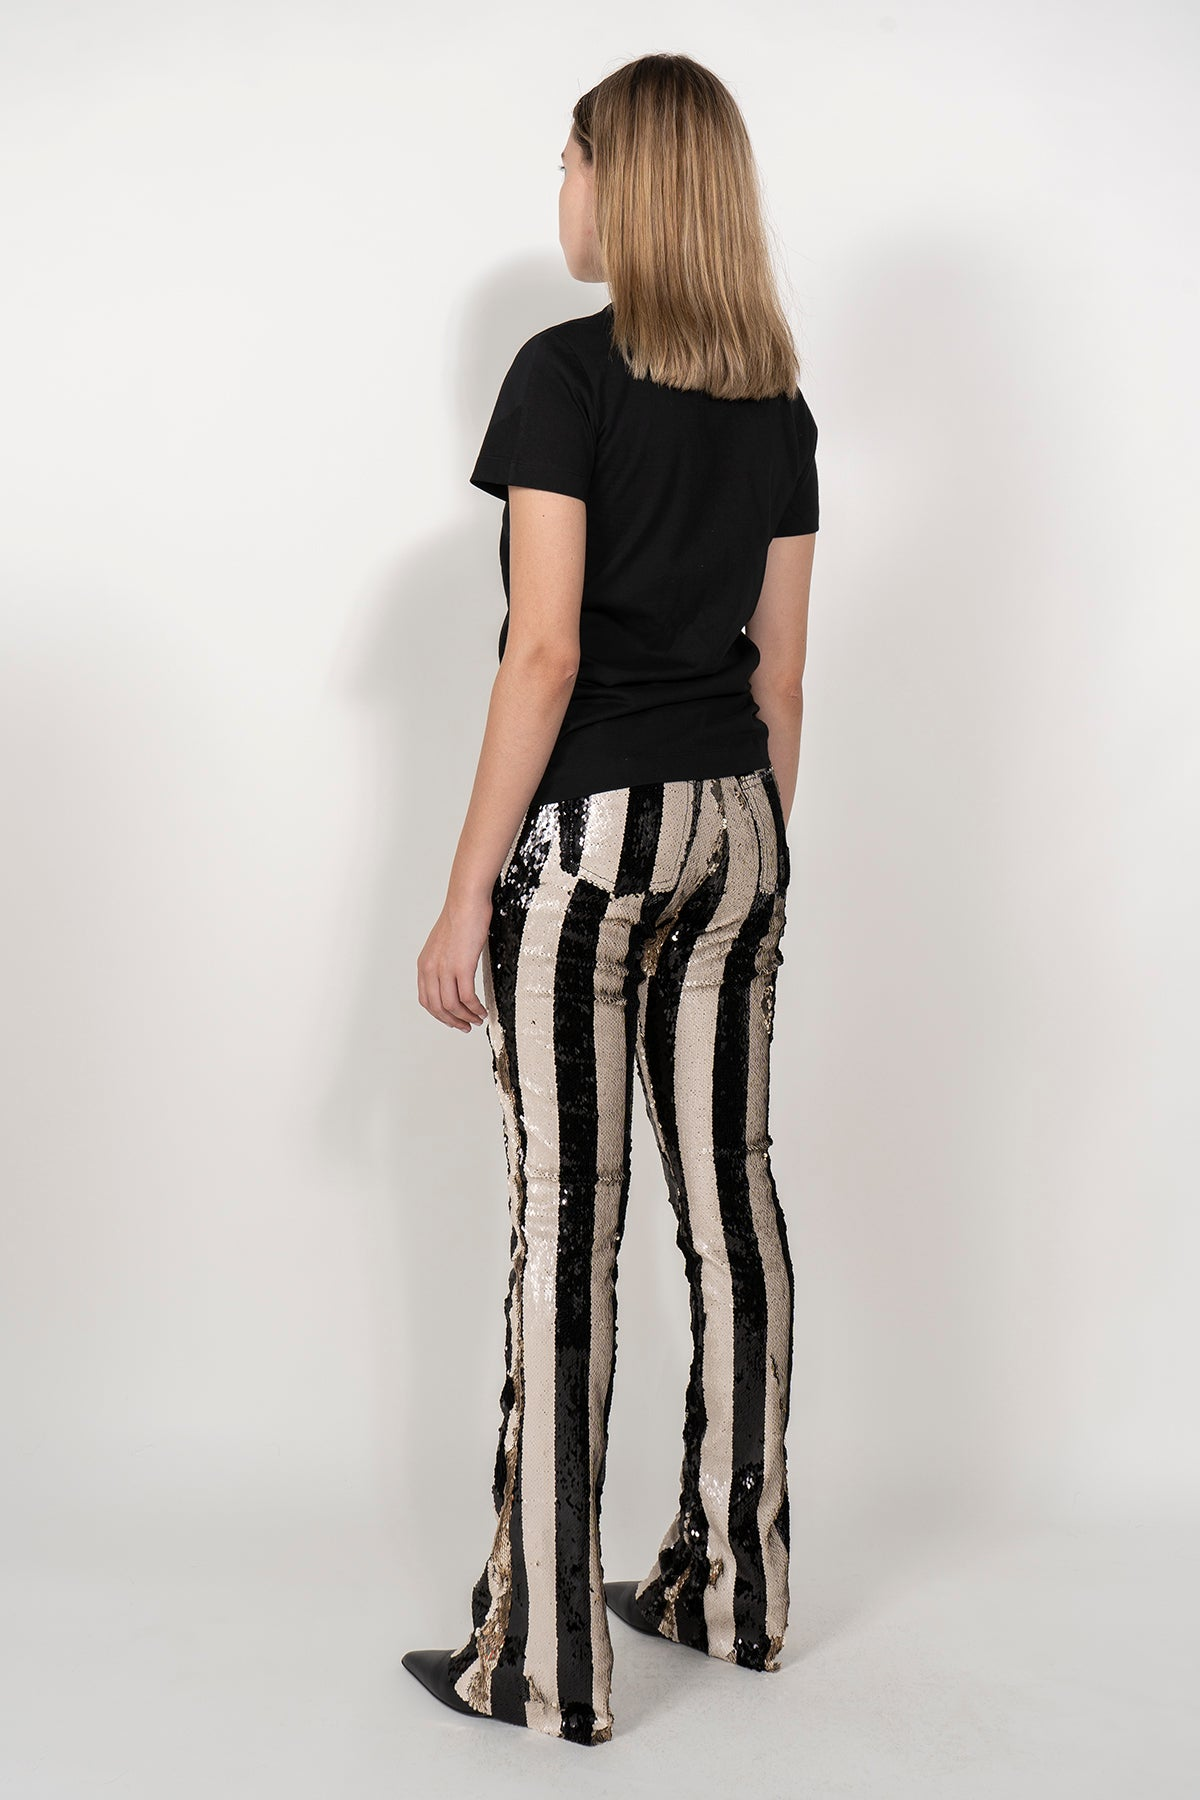 PRE-OWNED / SEQUIN TROUSERS IN BLACK & BEIGE marques almeida